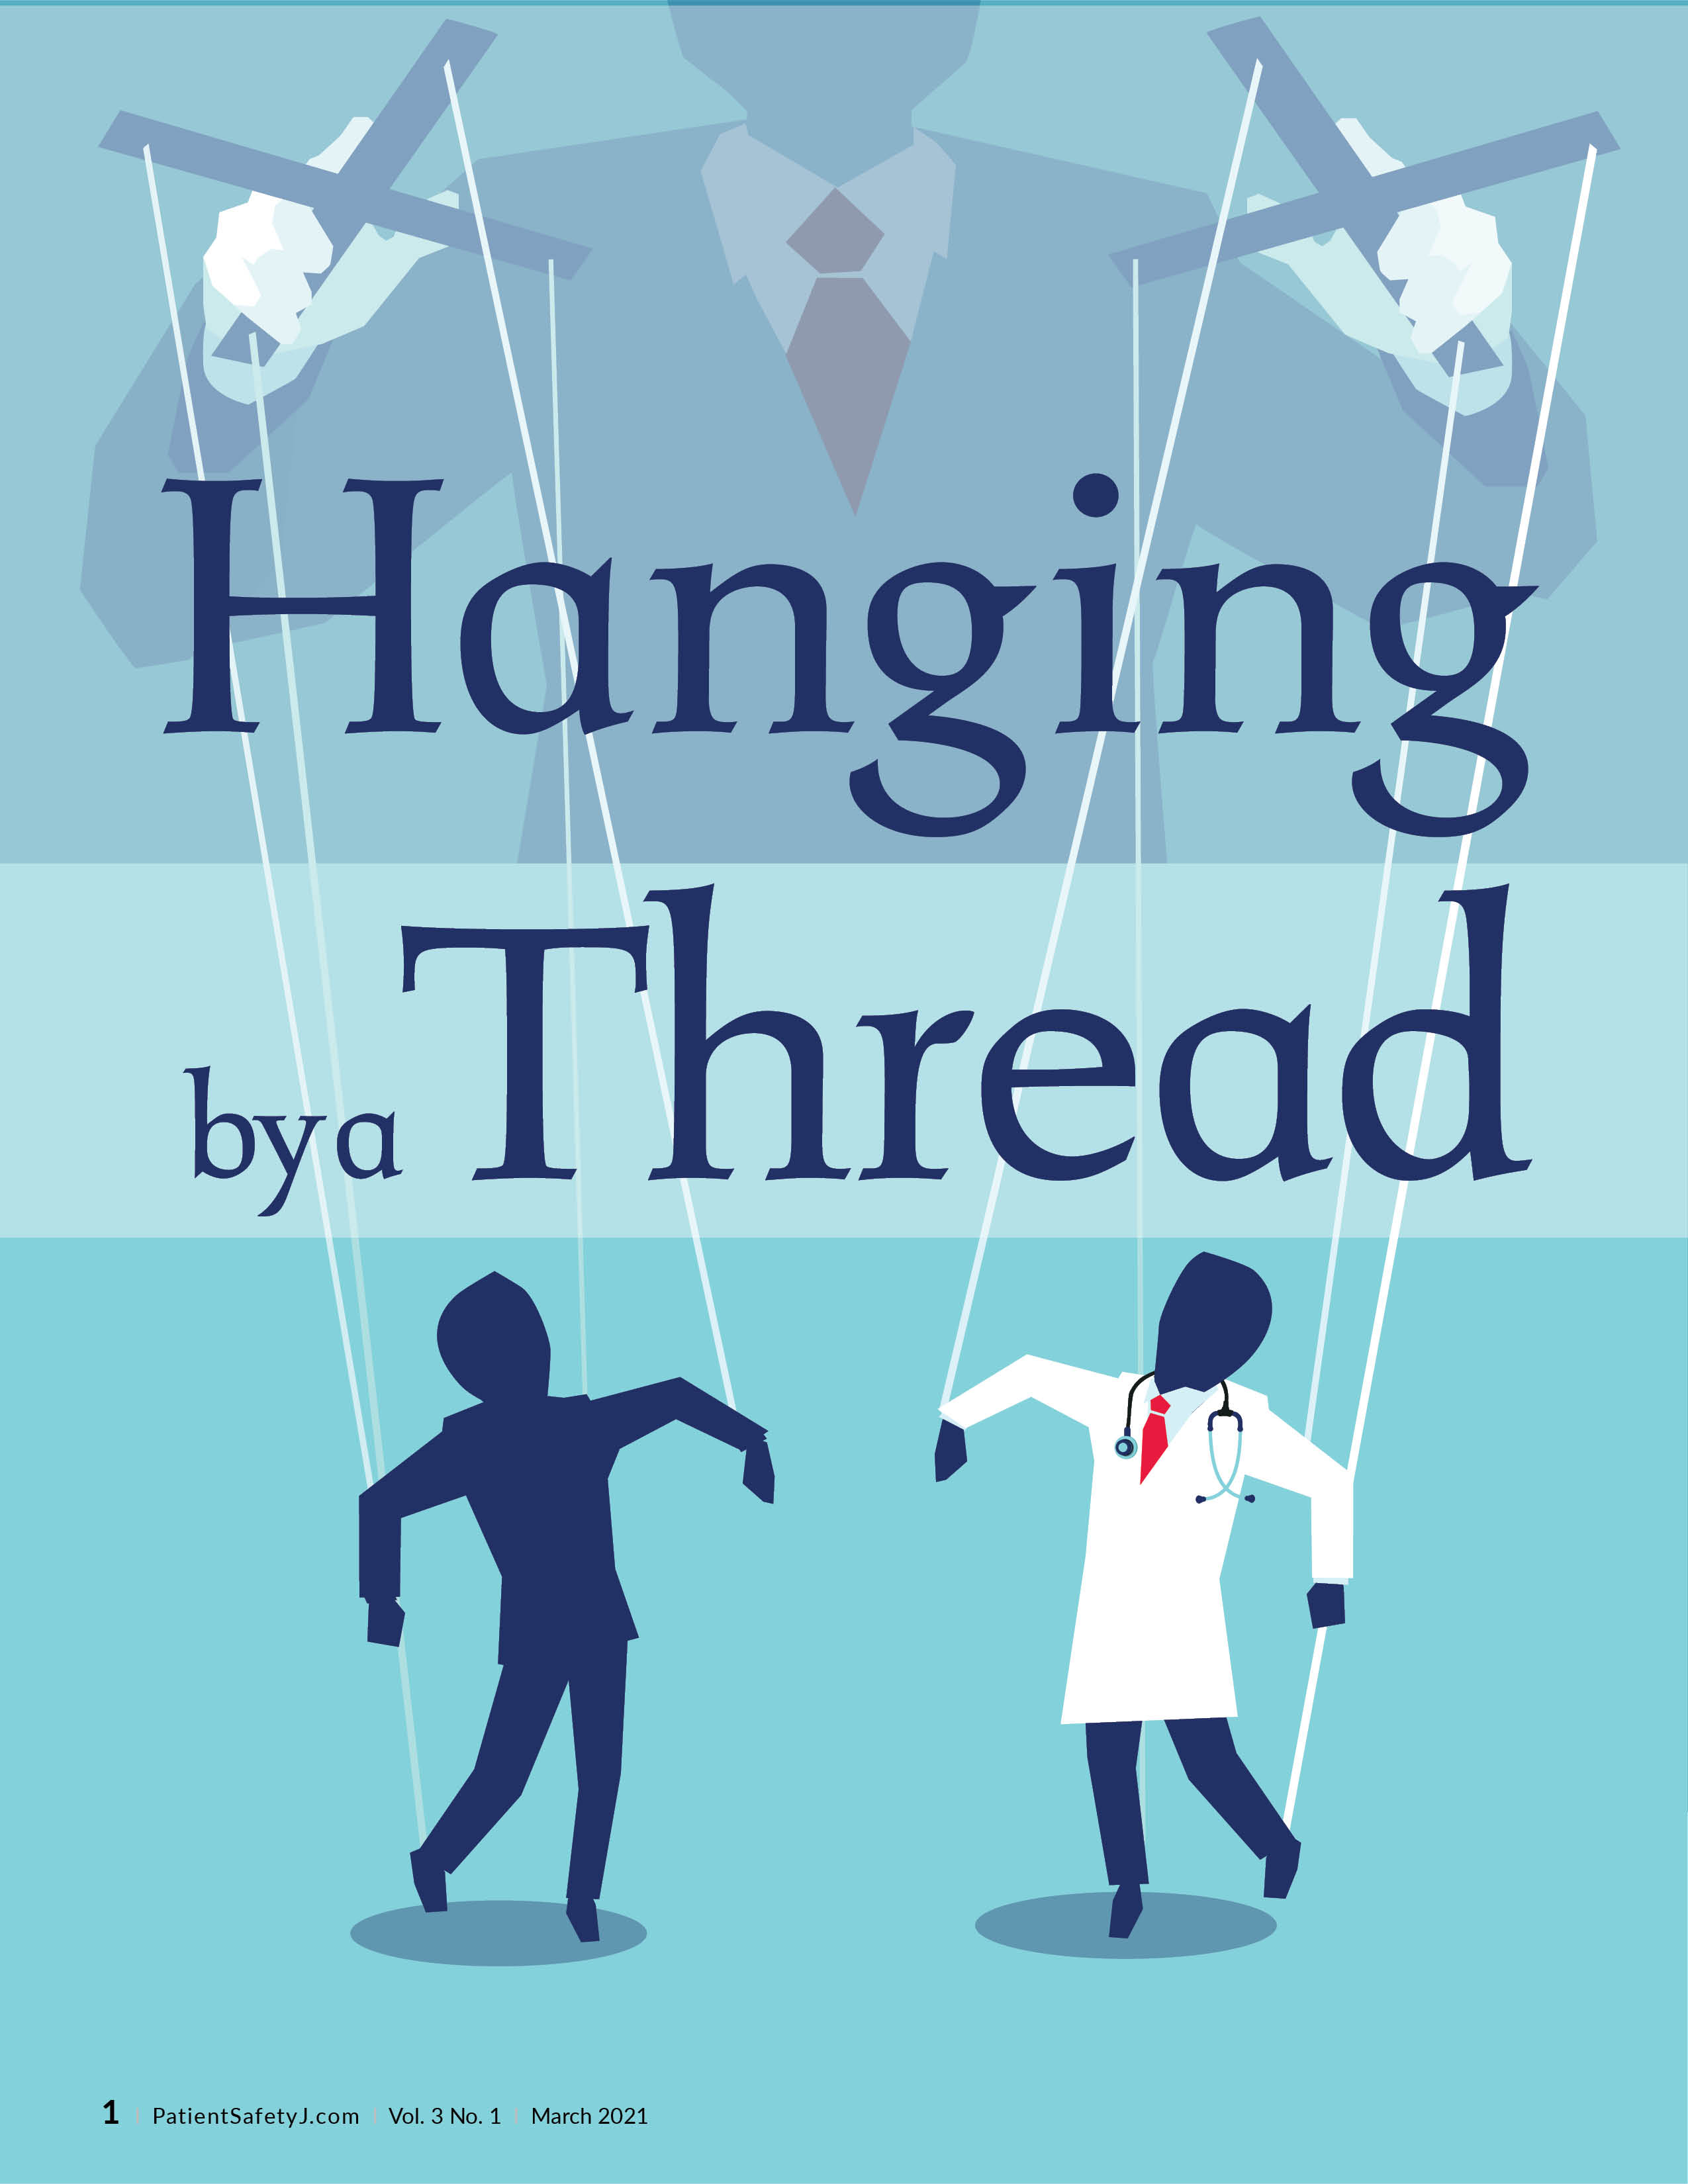 Man with two puppets hanging from strings, one a patient, the other a doctor